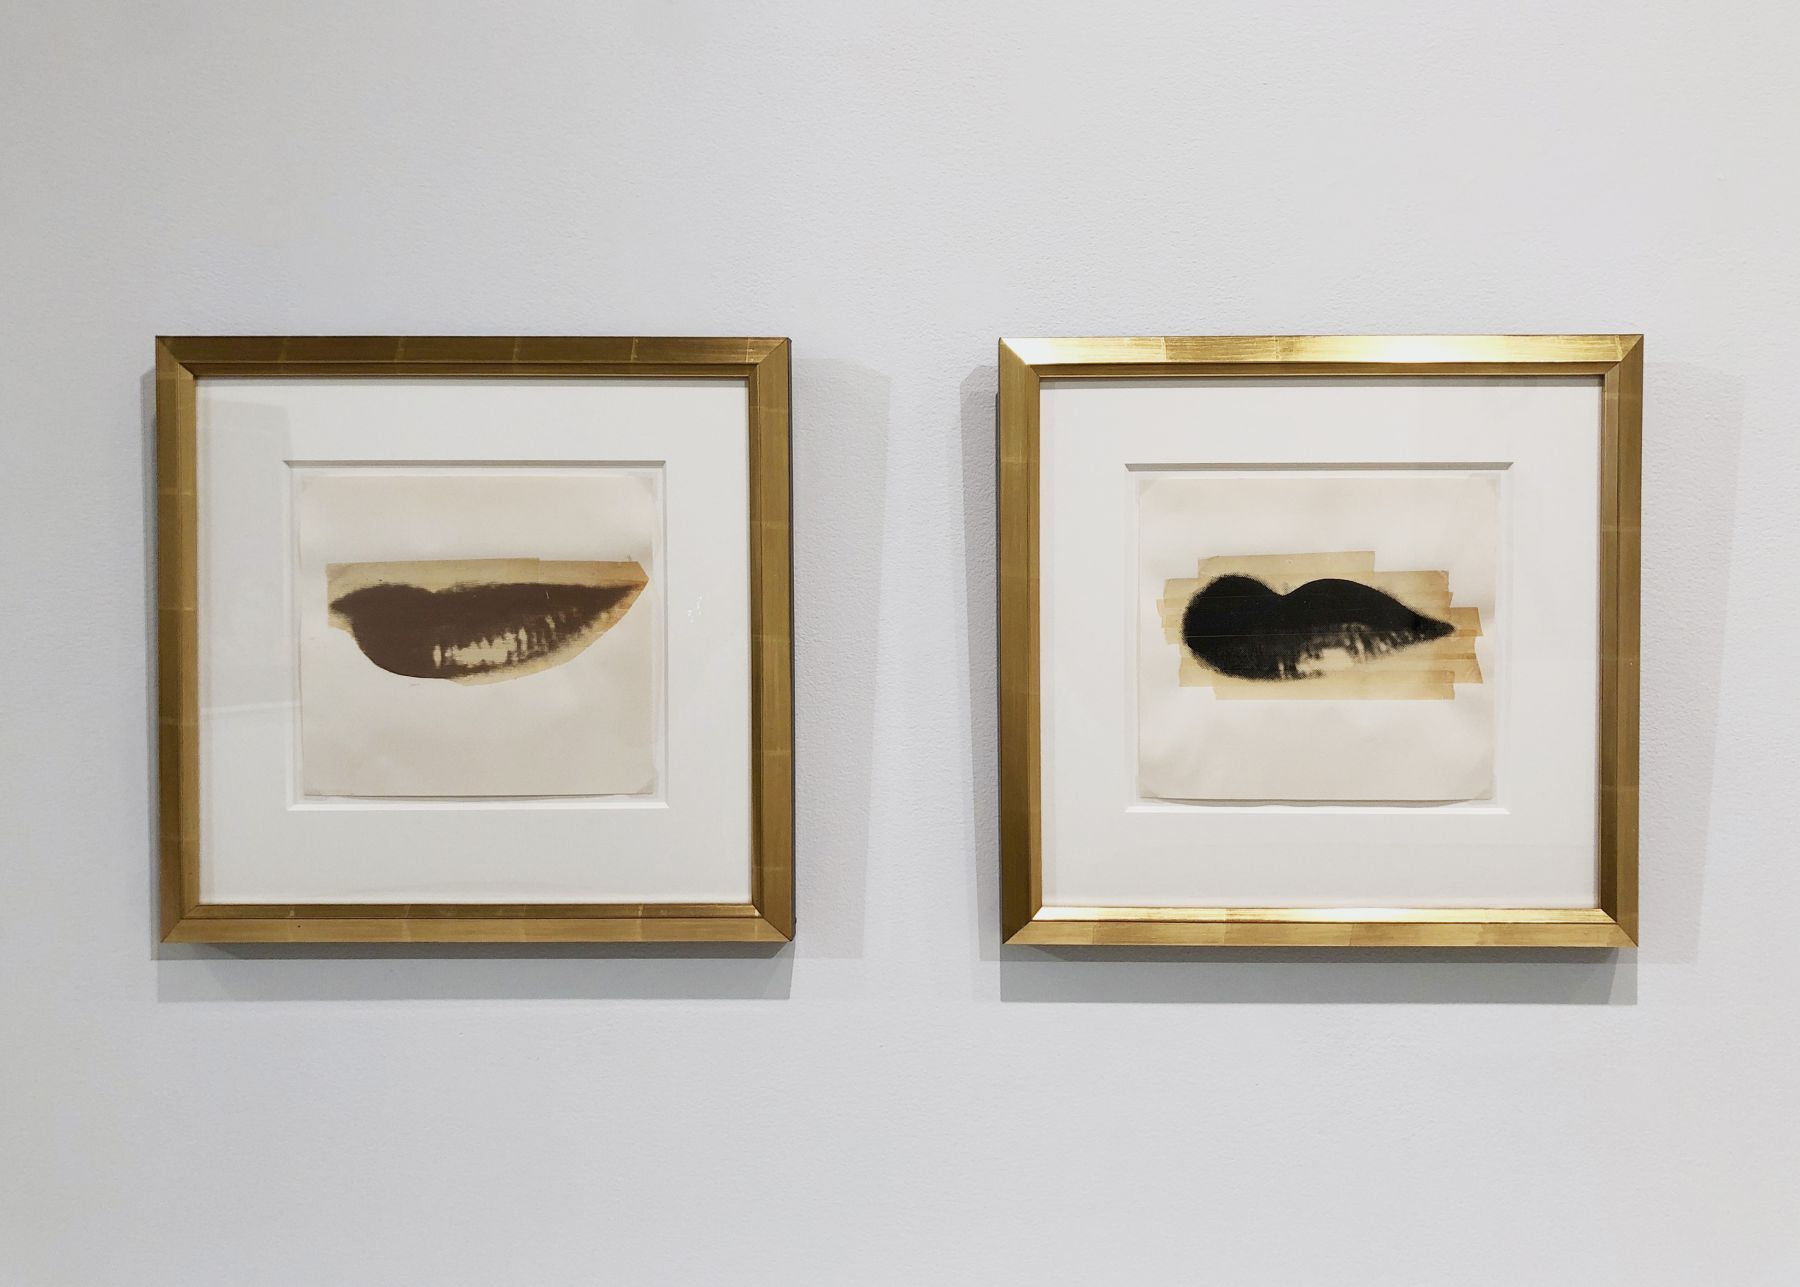 Andy Warhol, Lips c. 1975